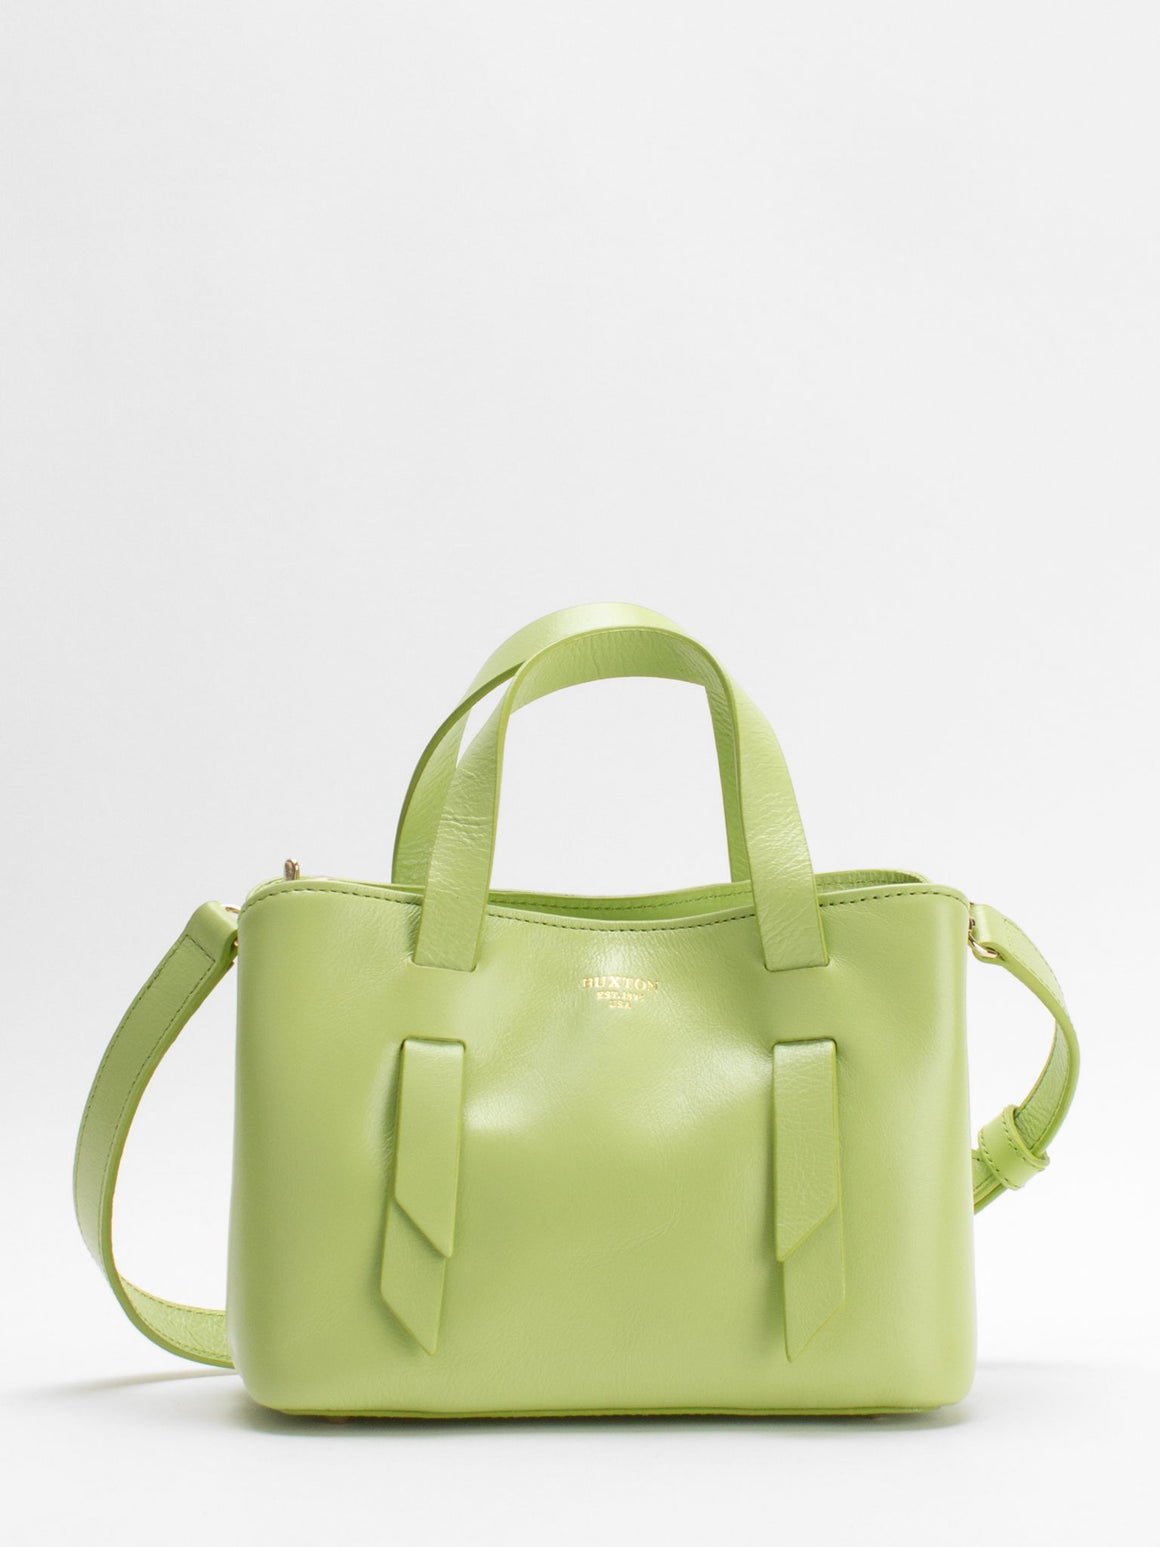 Charlee Small Leather Satchel - Apple Green